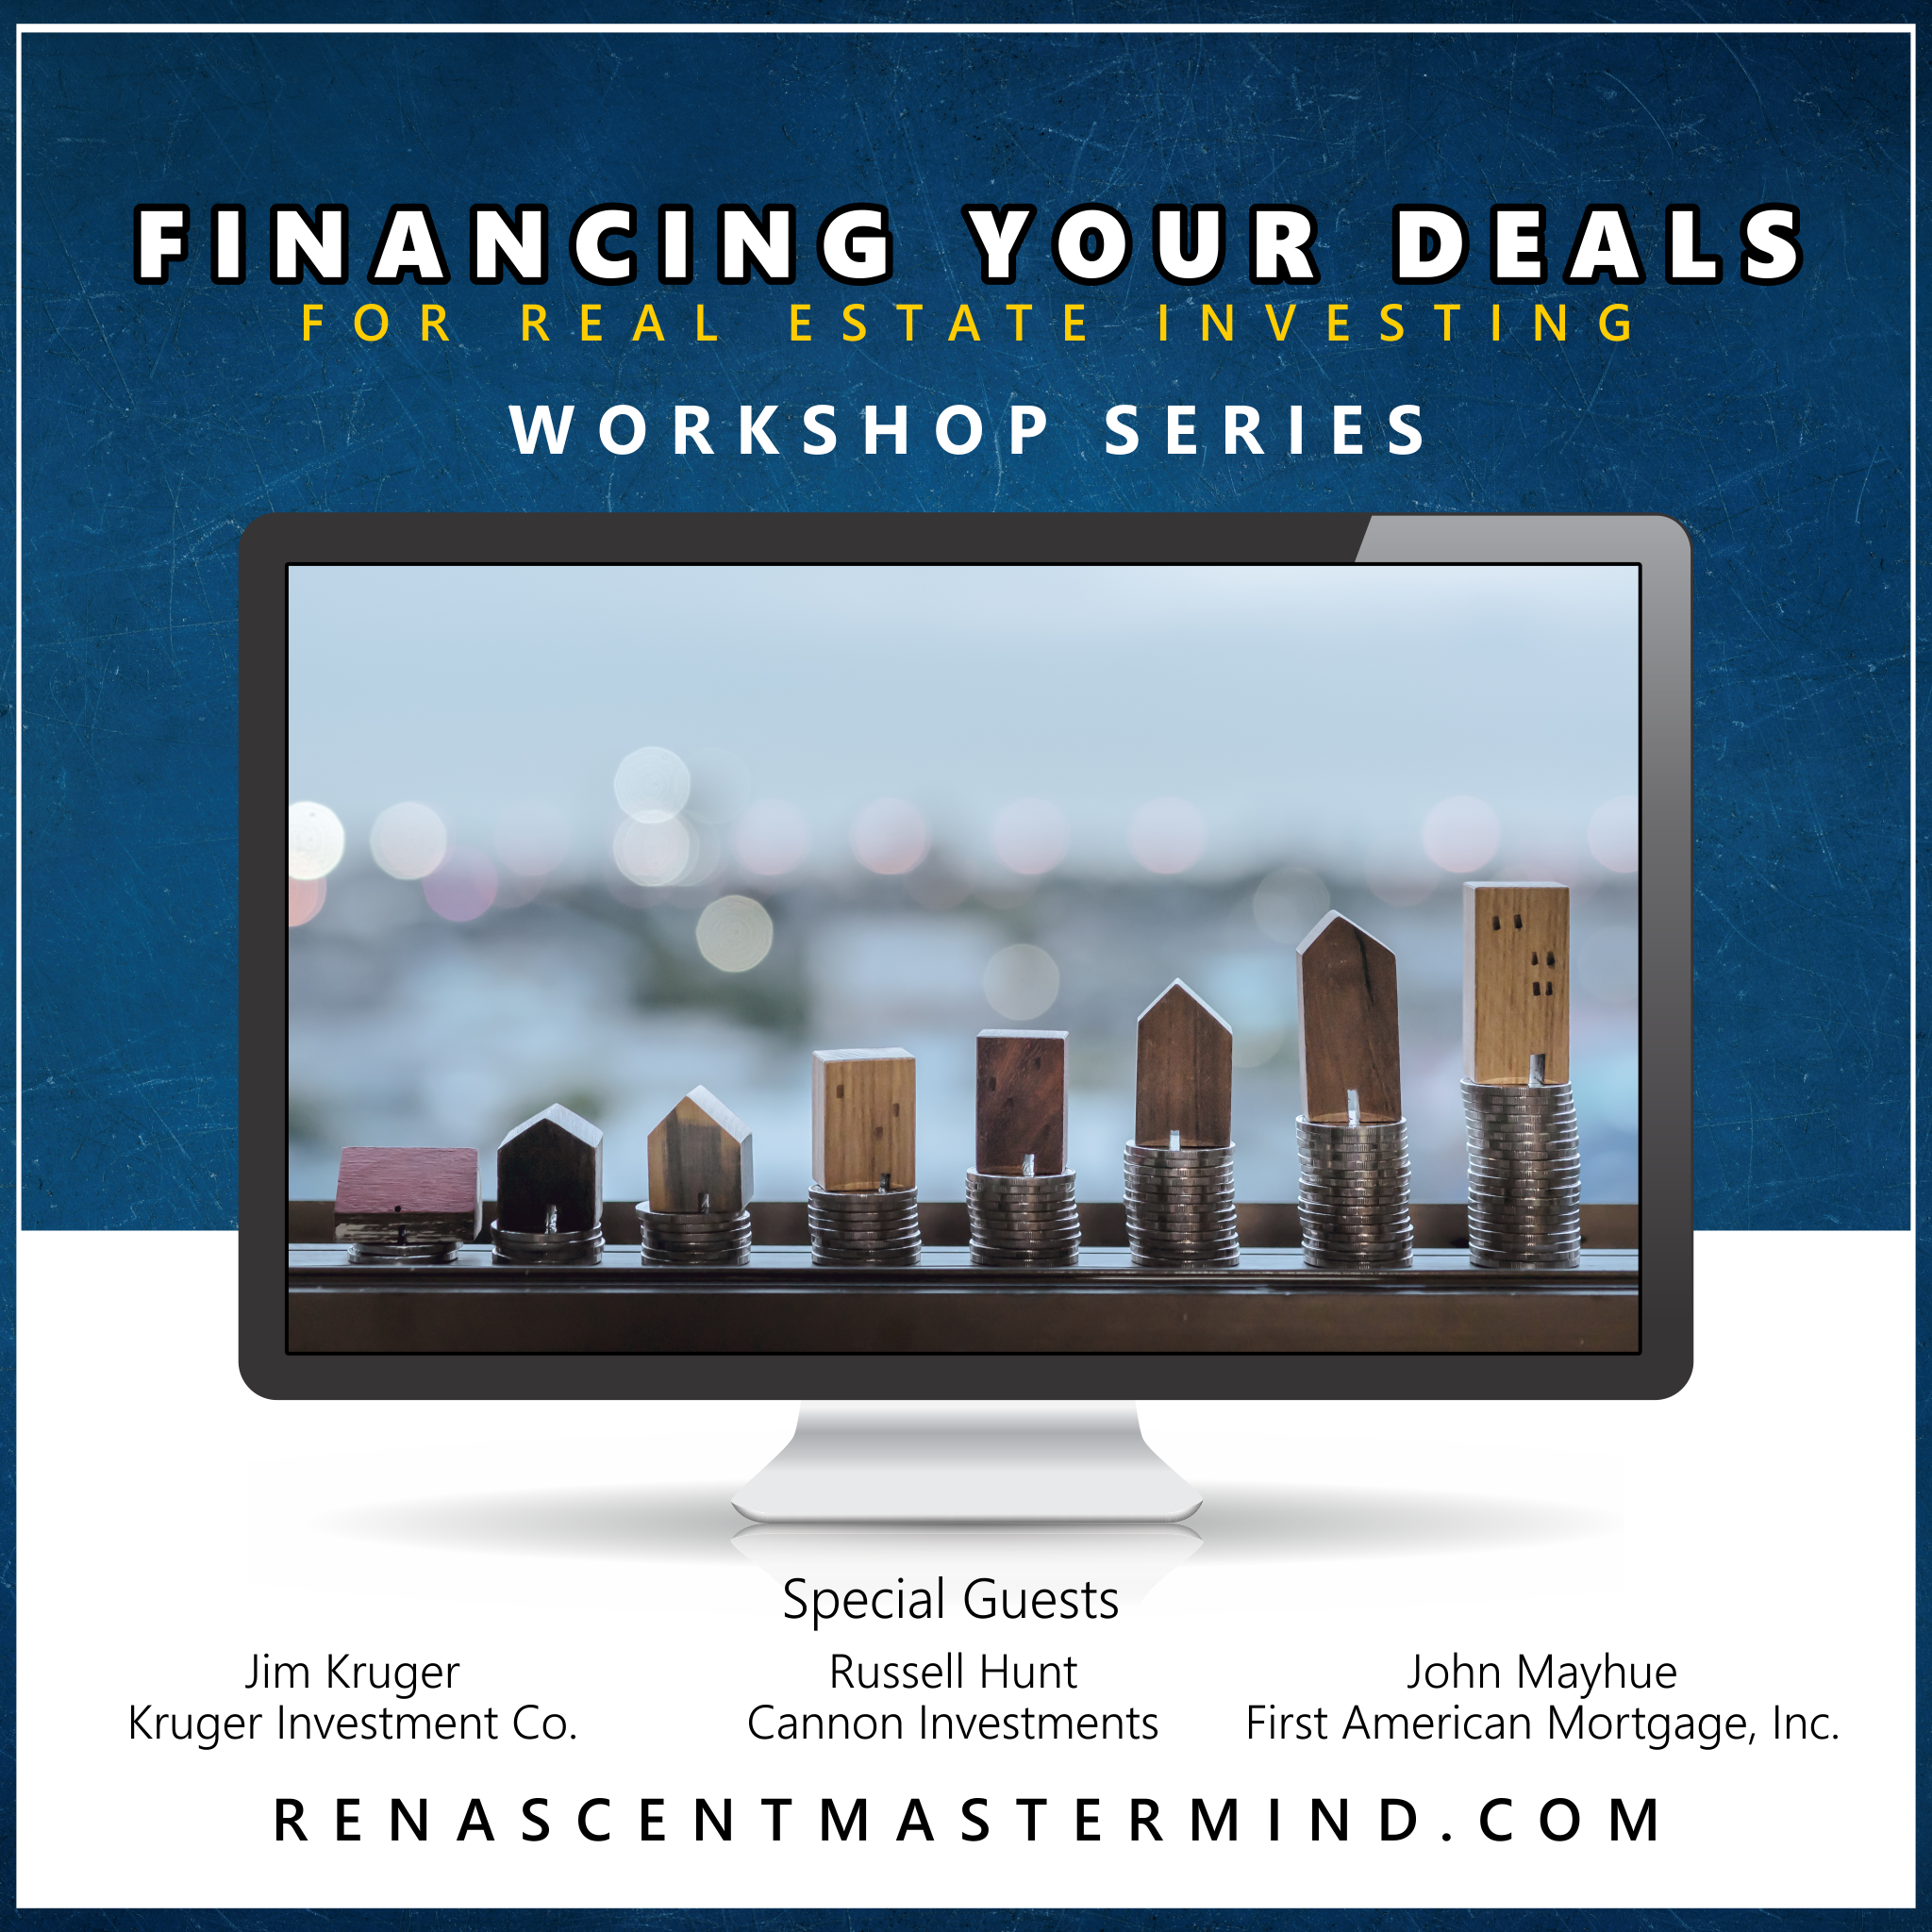 Financing Your Deals | Workshop Series with Renascent Mastermind